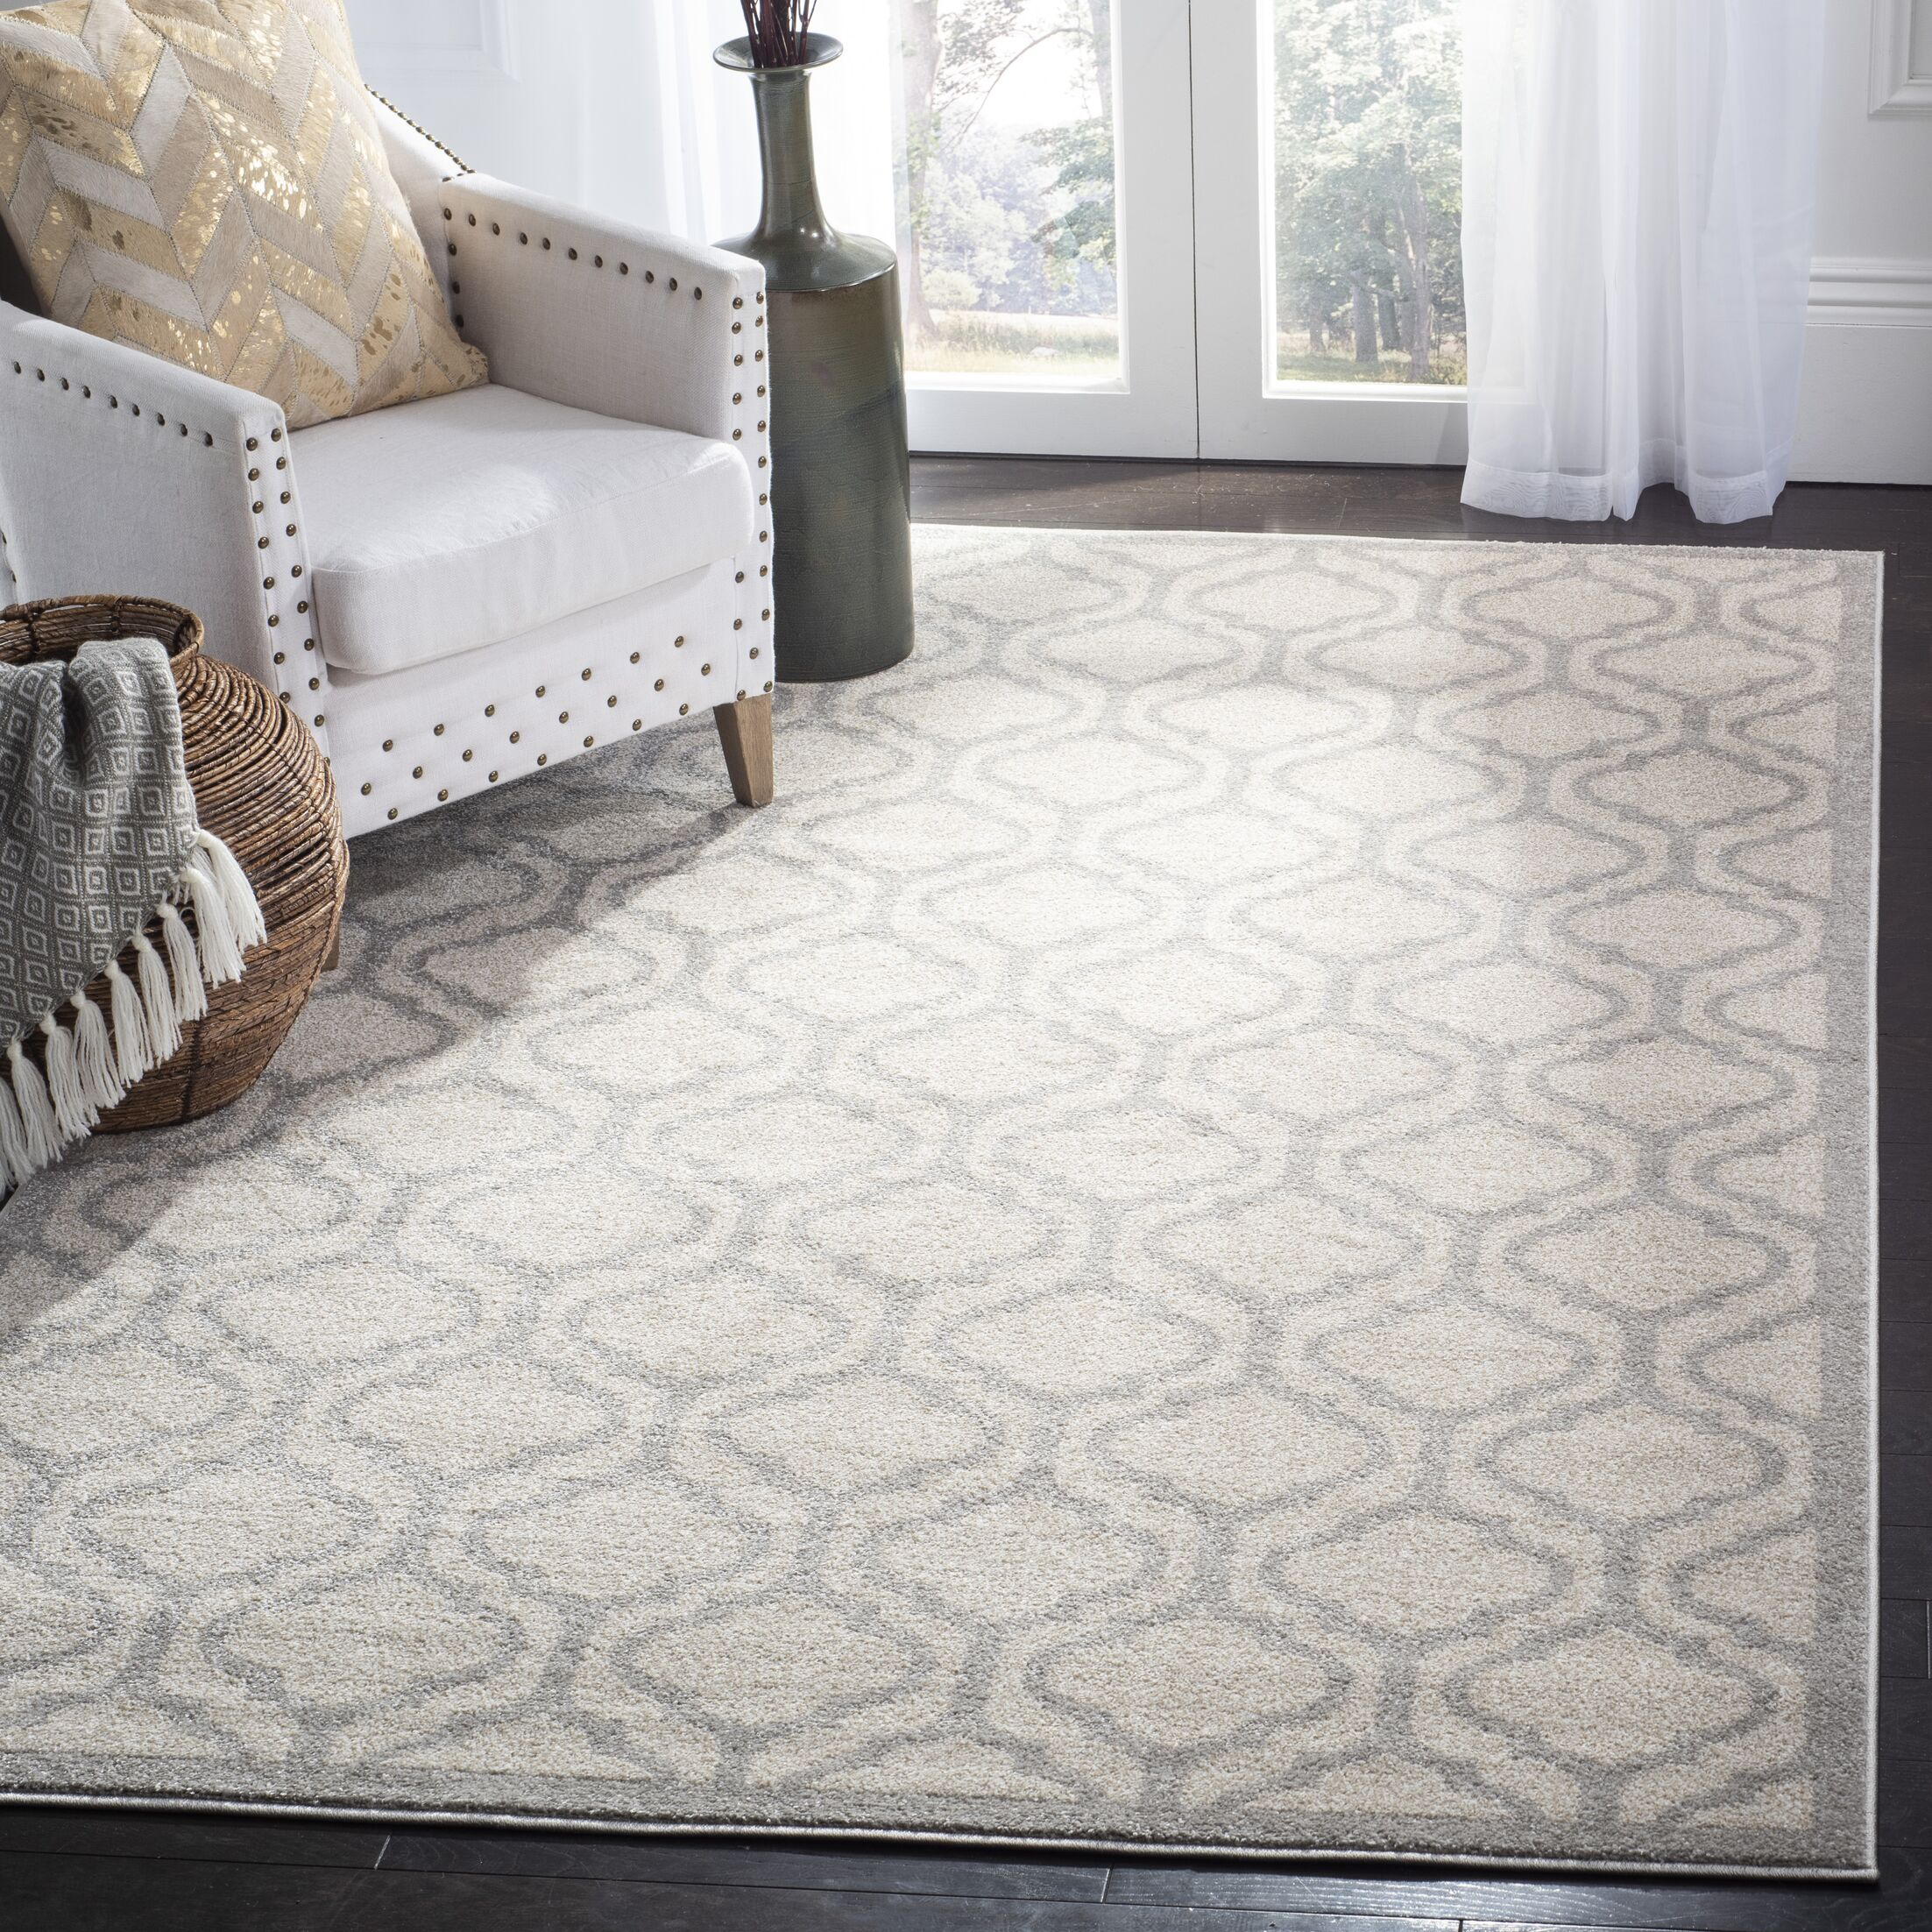 Carman Ivory/Light Gray Indoor/Outdoor Area Rug Rug Size: Rectangle 5' x 8'